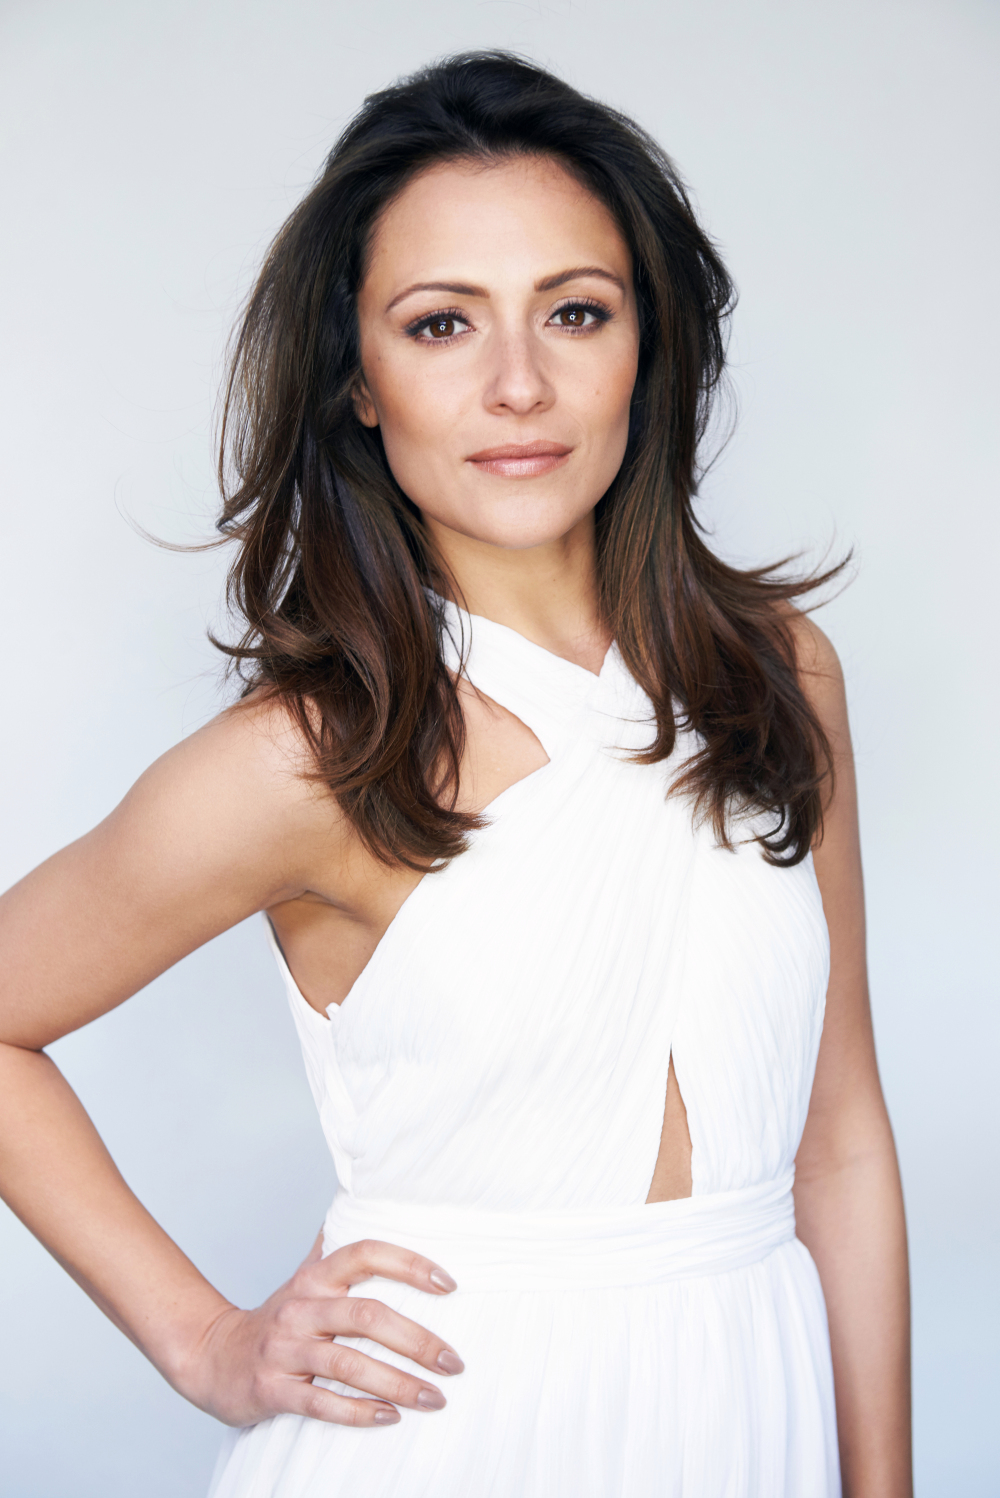 How tall is Italia Ricci?